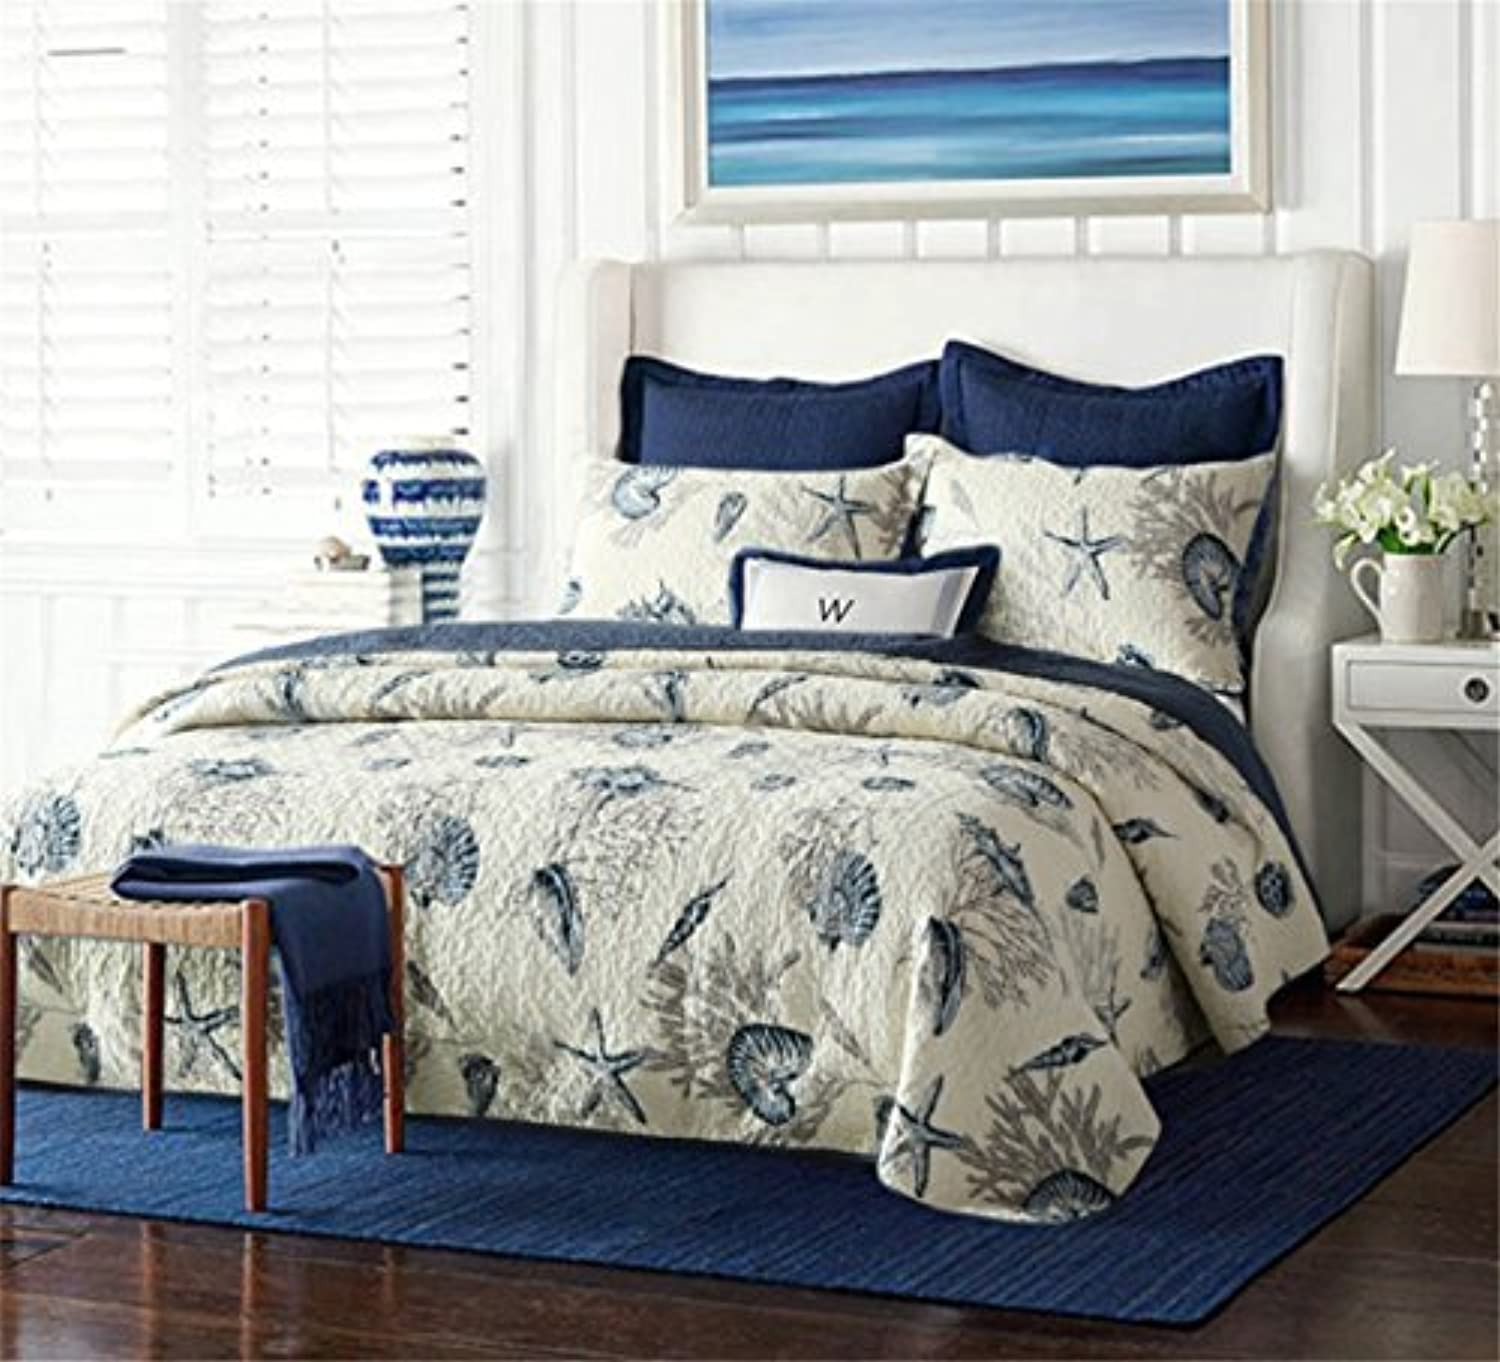 Nautical Queen Quilt Set 1 Reversible Bedspread and 2 Pillowcases,100% Cotton Comfy Navy bluee Coverlet Set,Lightweight and Hypoallergenic